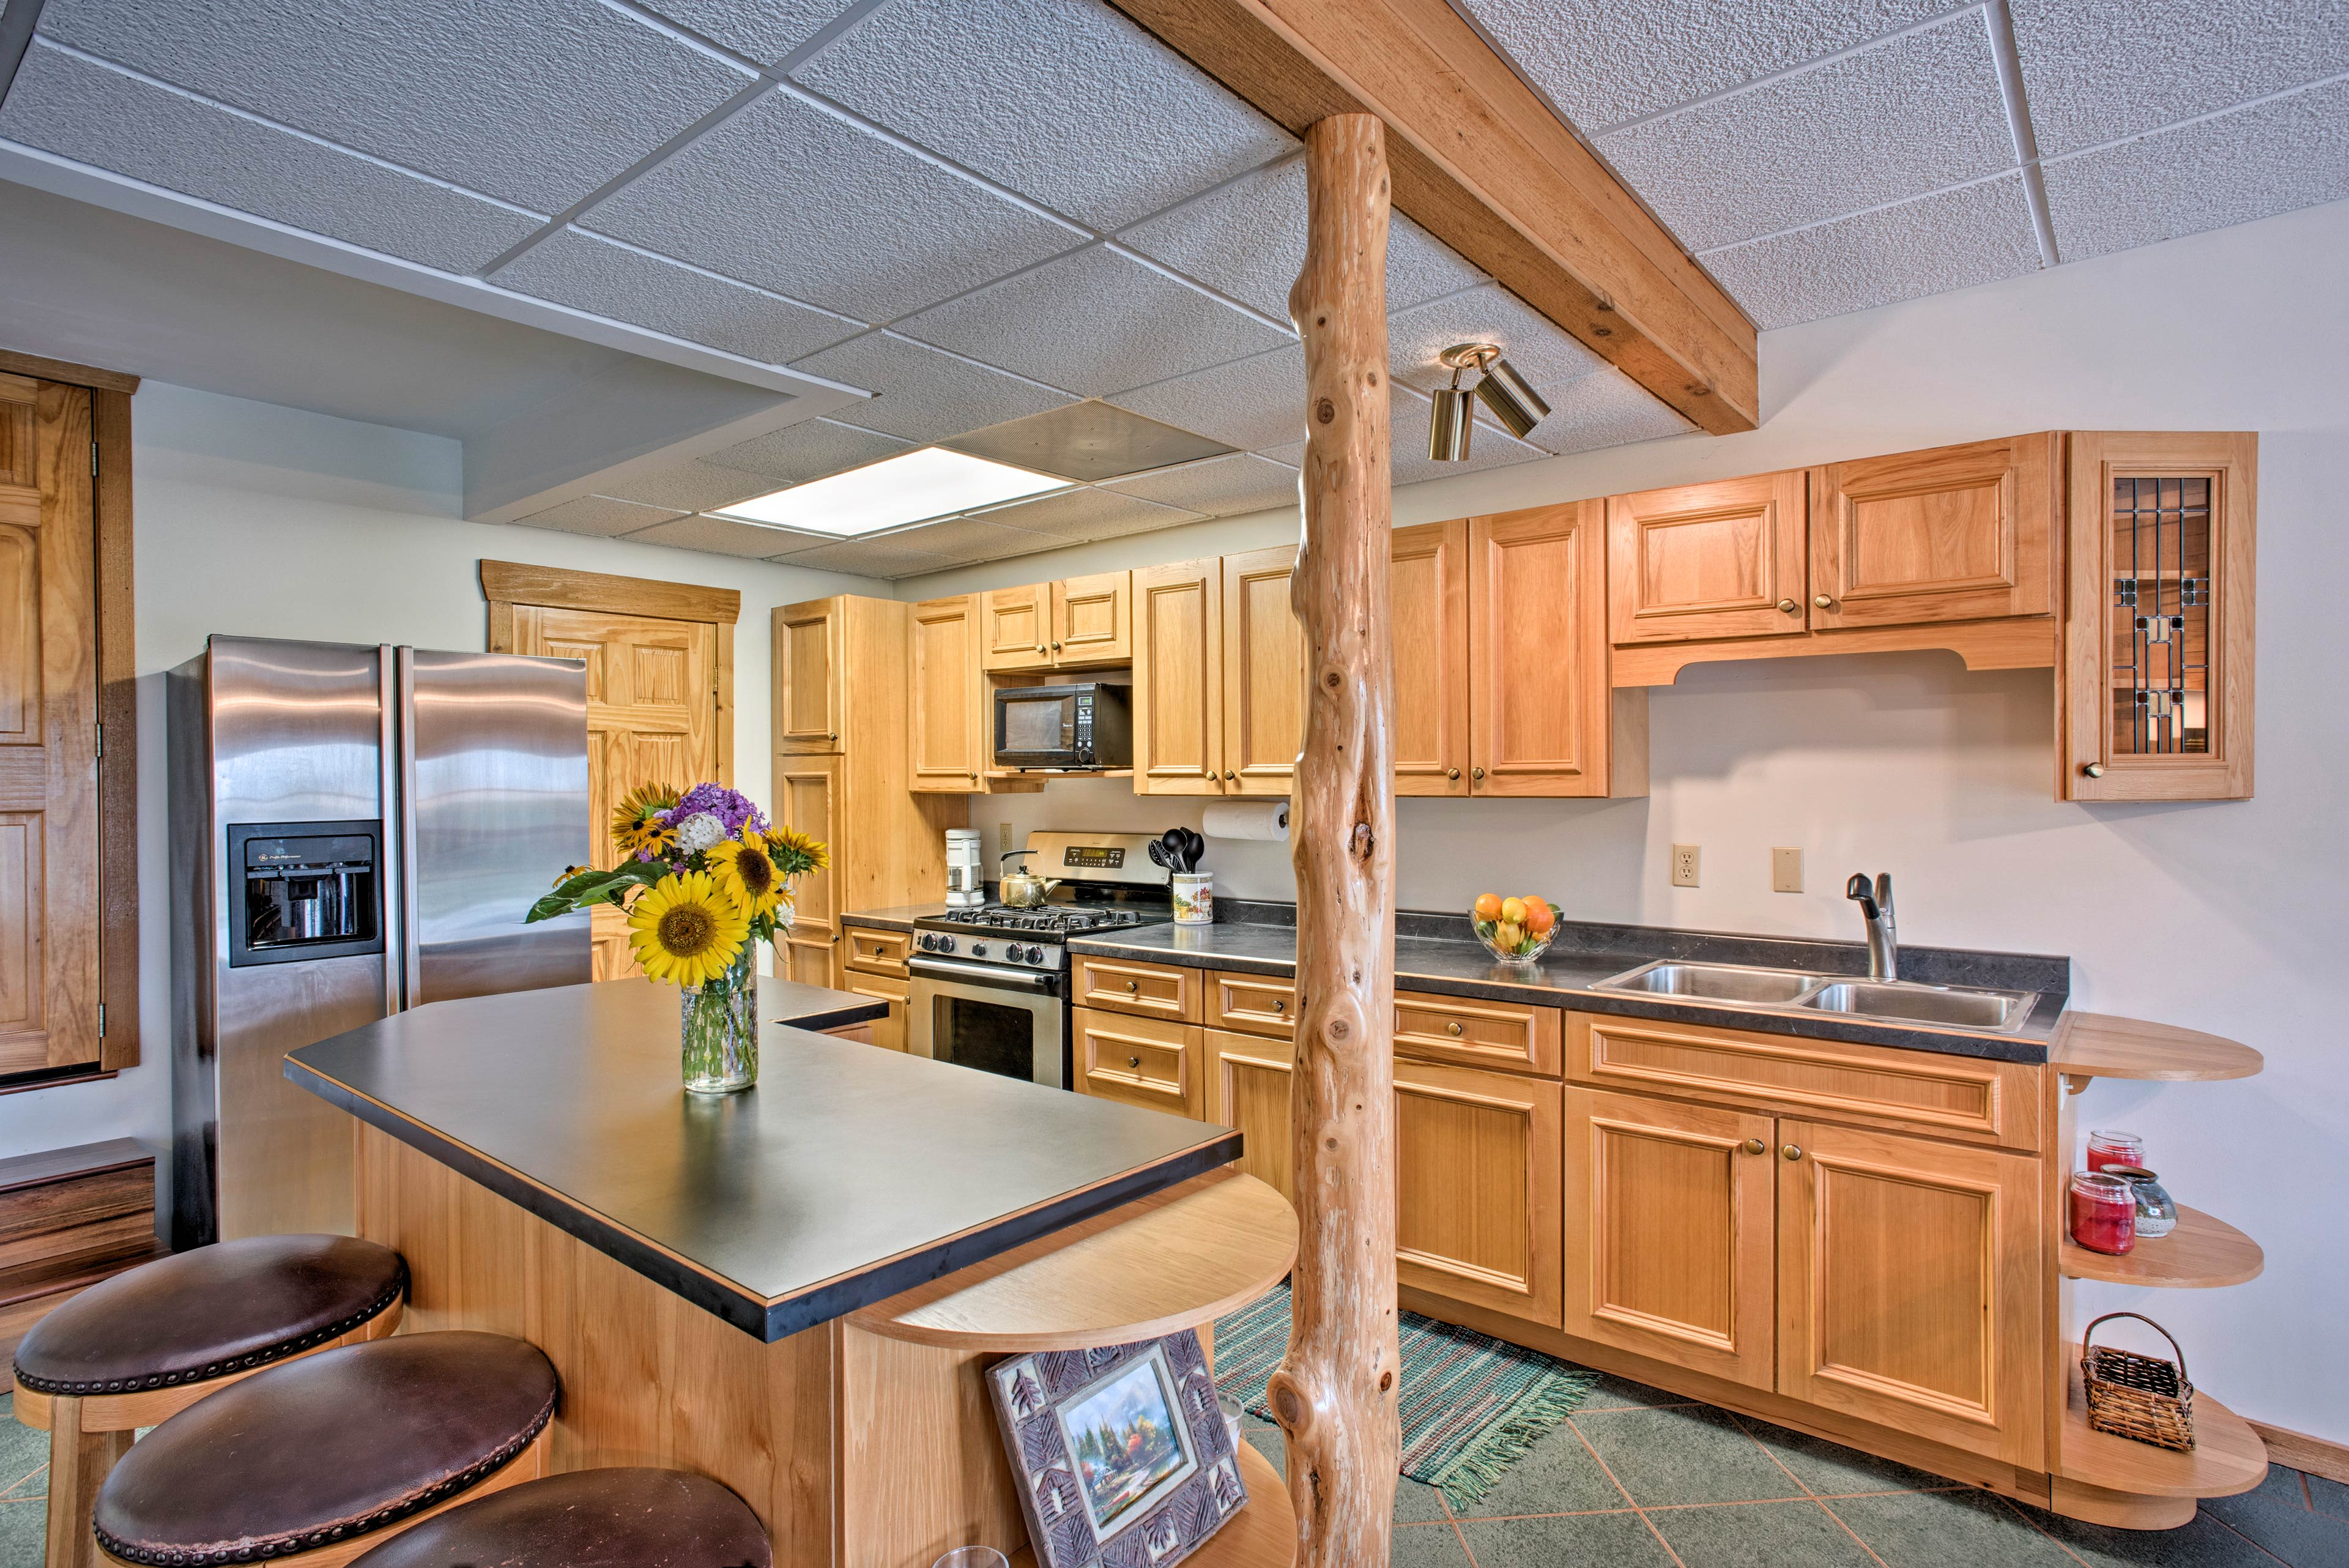 The kitchen is fully equipped with stainless steel appliances and cookware.